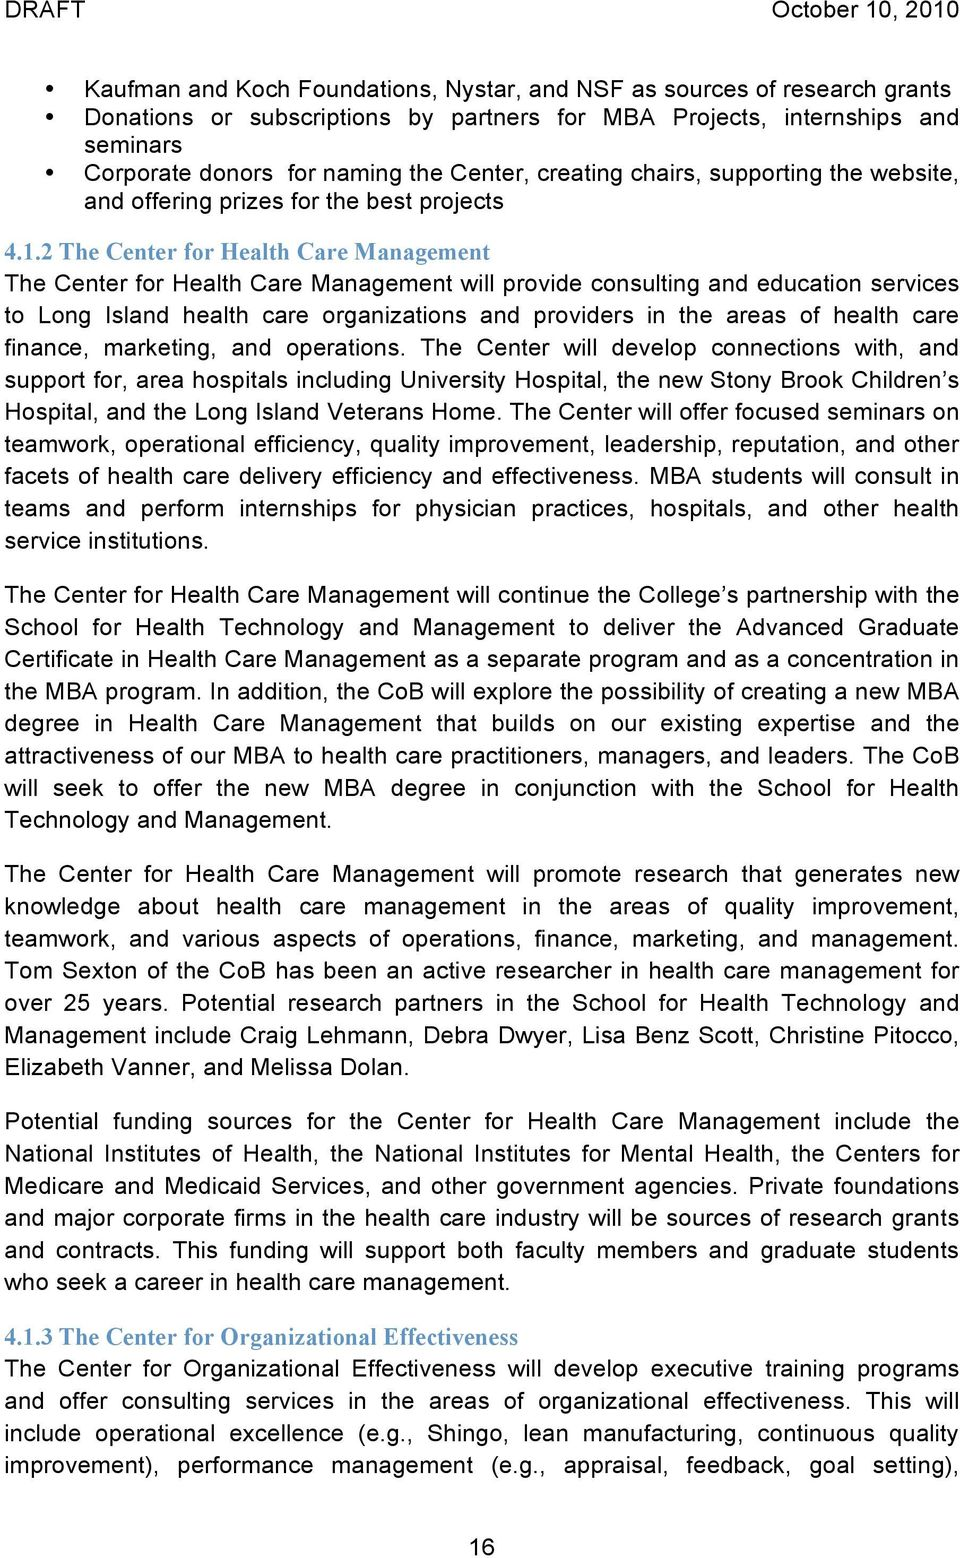 2 The Center for Health Care Management The Center for Health Care Management will provide consulting and education services to Long Island health care organizations and providers in the areas of